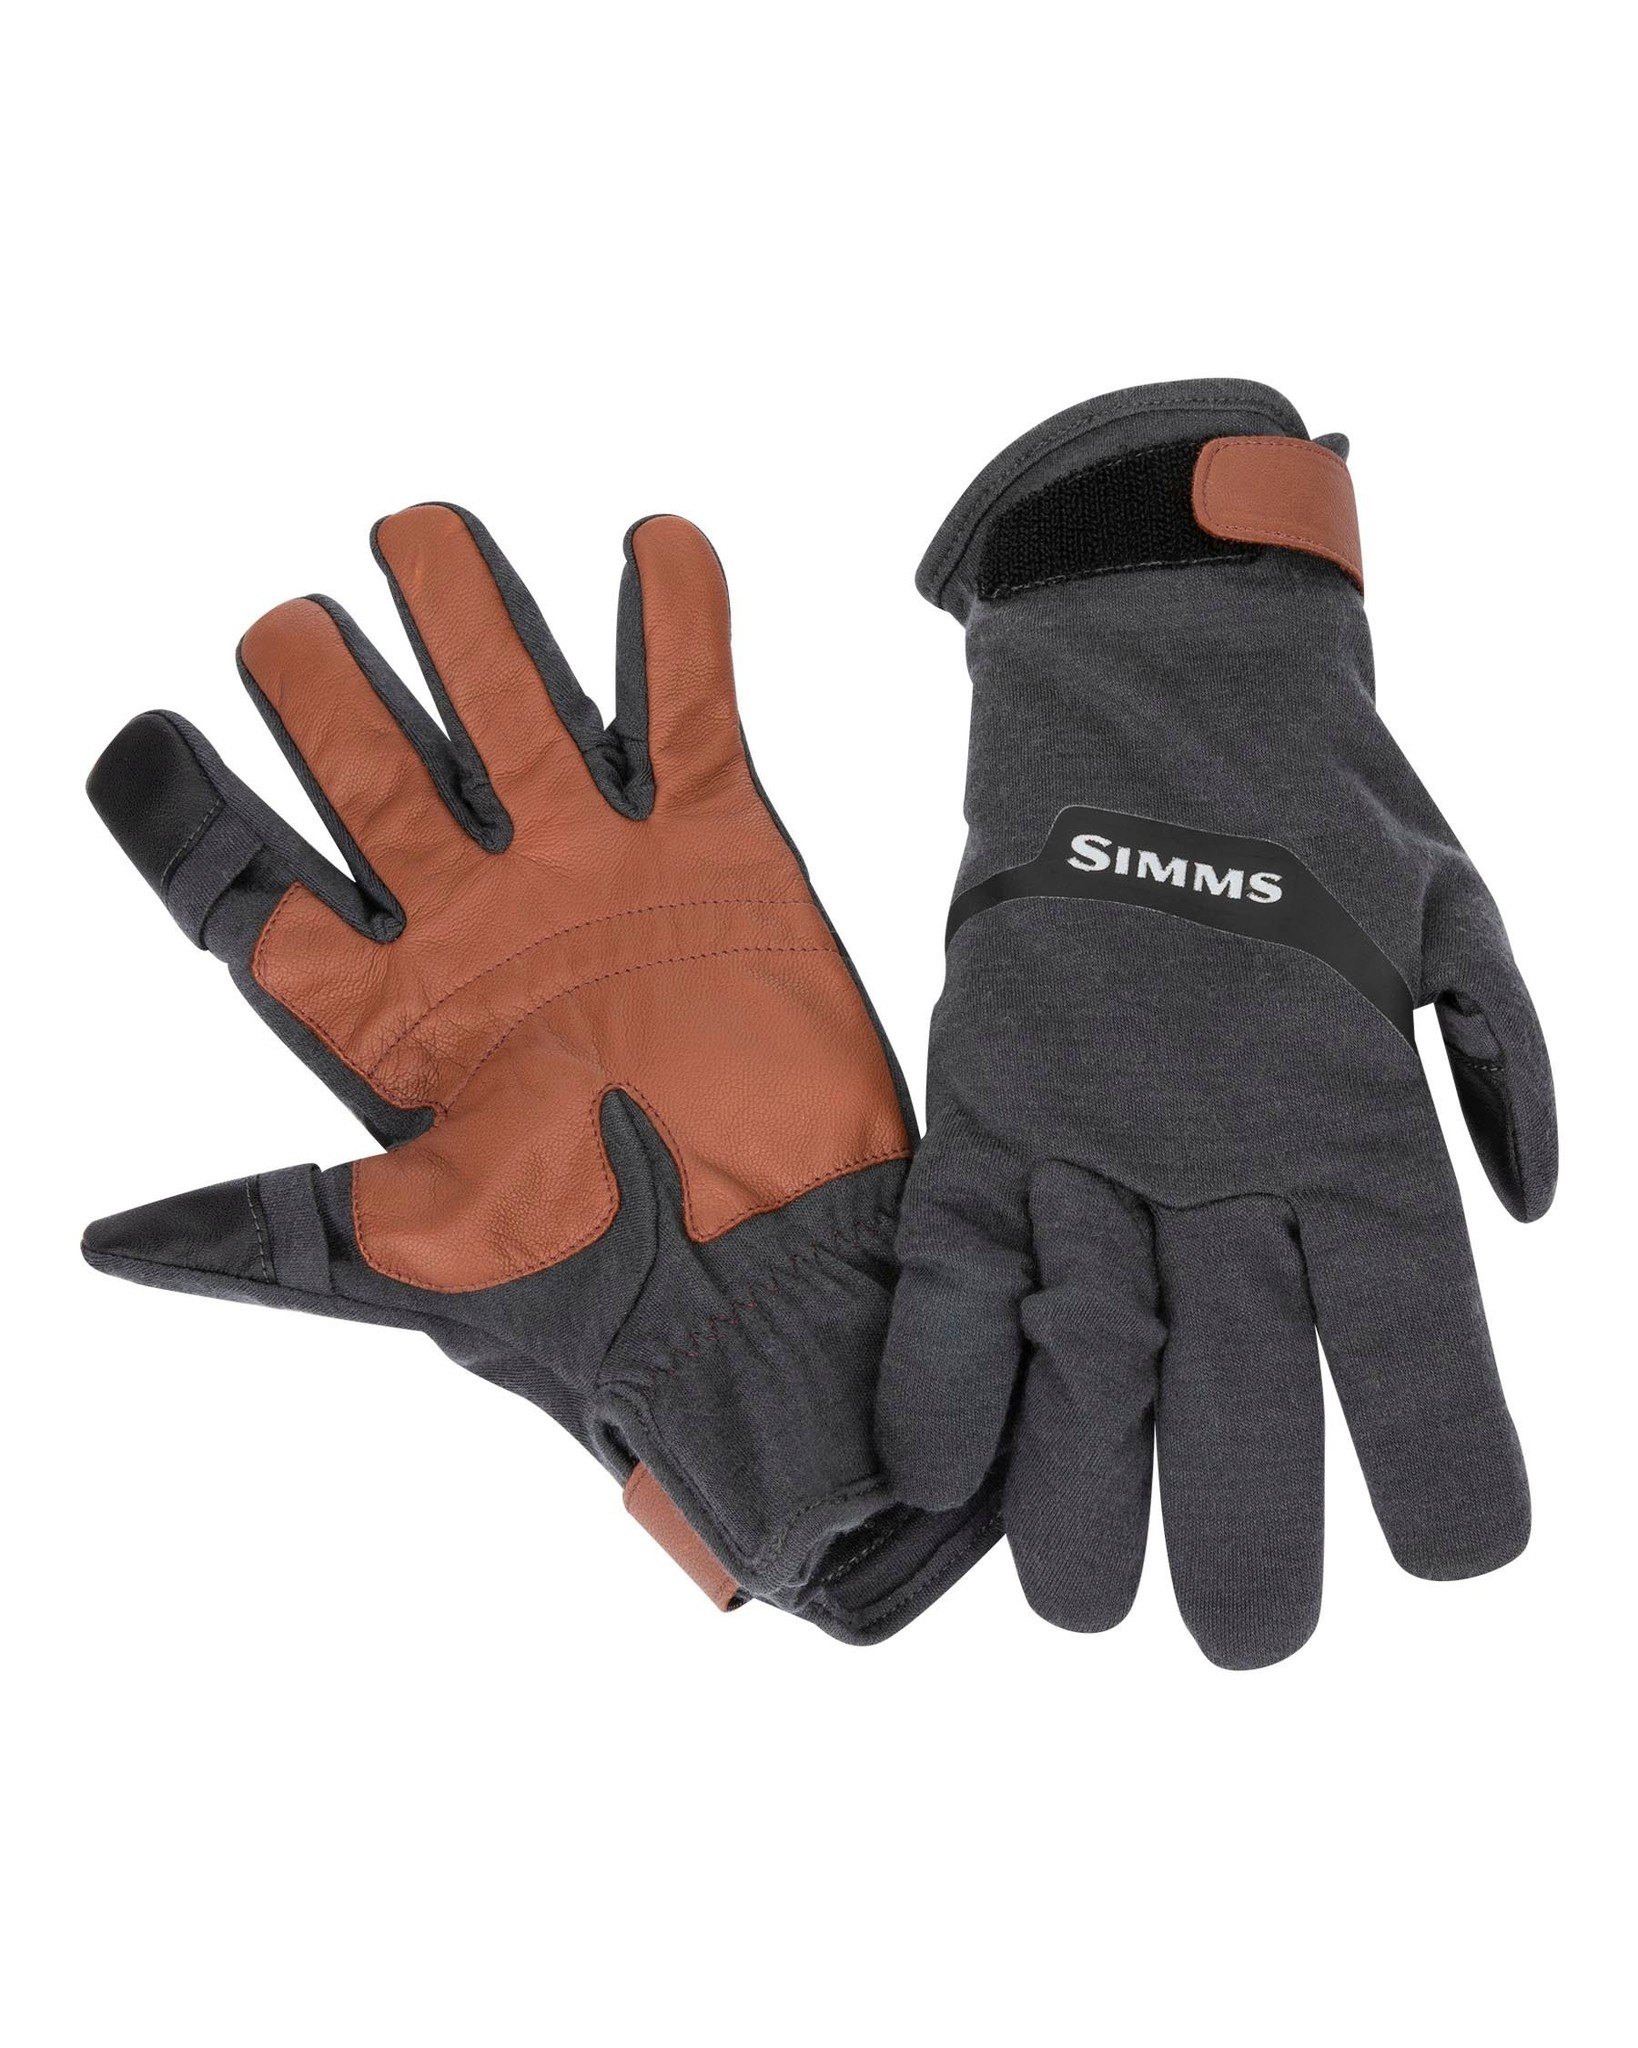 SIMMS SIMMS LIGHTWEIGHT WOOL FLEX GLOVE